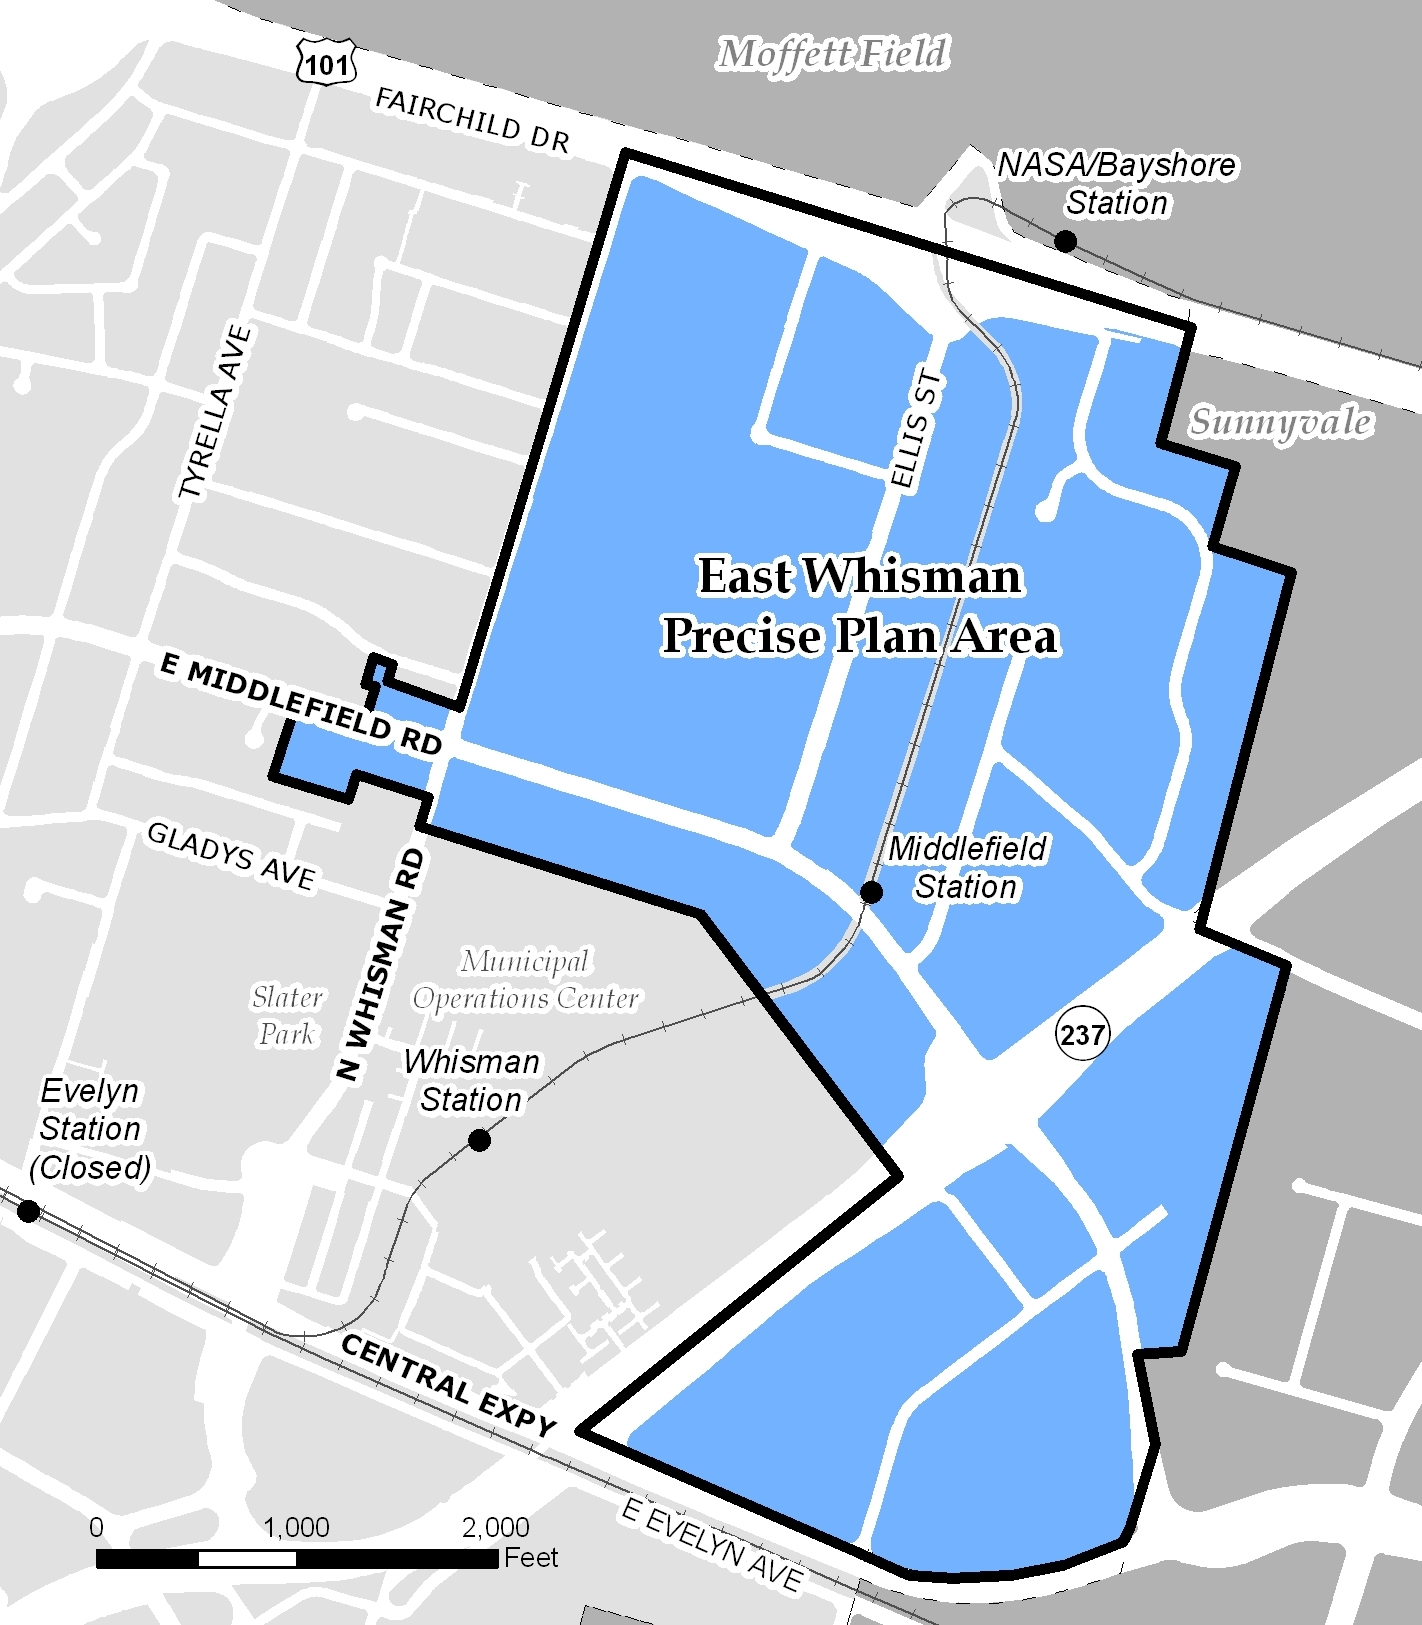 Map of East Whisman area